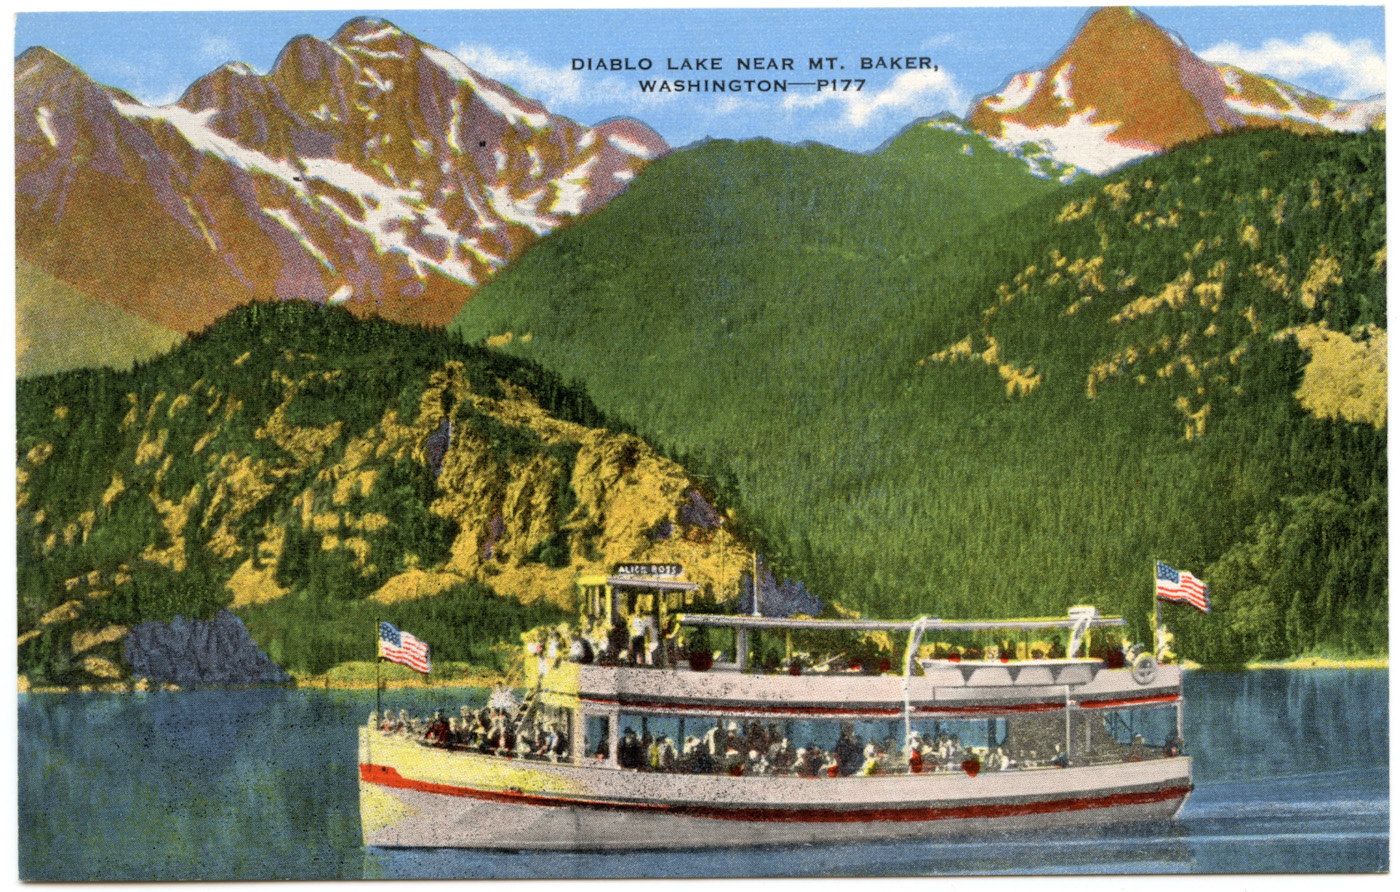 The Alice Ross Tour Boat On Diablo Lake <br> (NCpostcard_007-3.jpg)